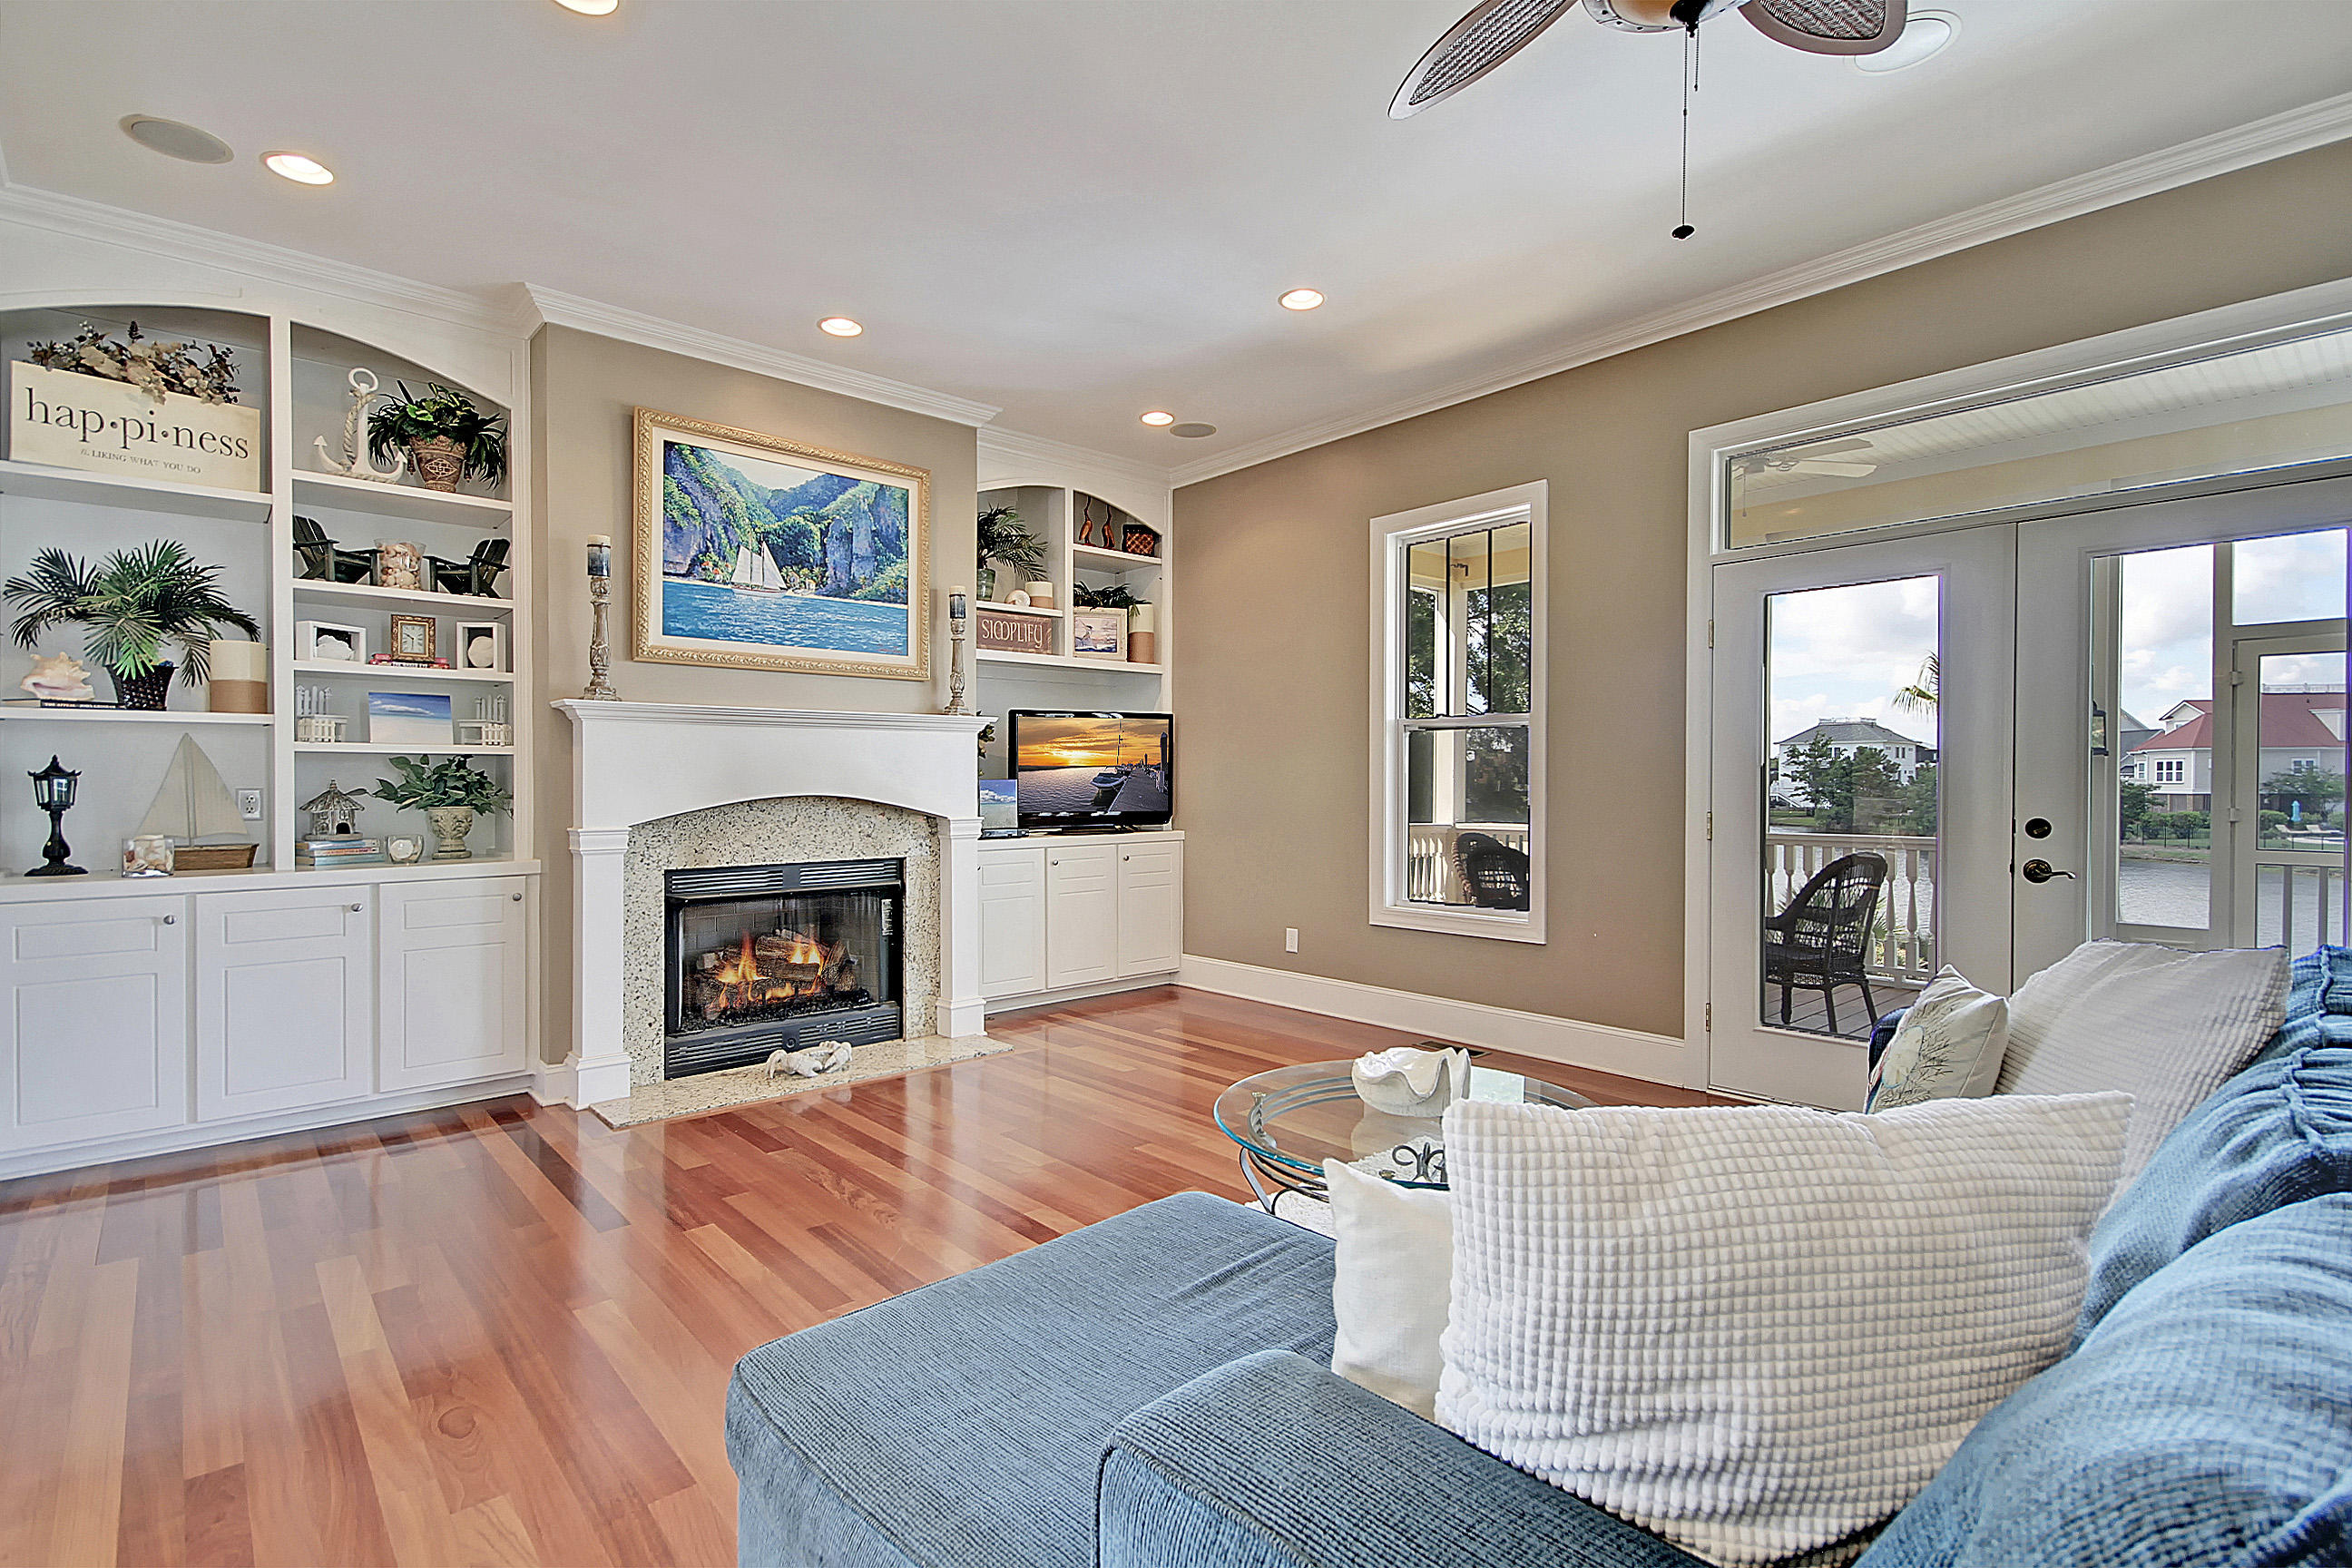 Rivertowne Country Club Homes For Sale - 1536 Rivertowne Country Club, Mount Pleasant, SC - 7